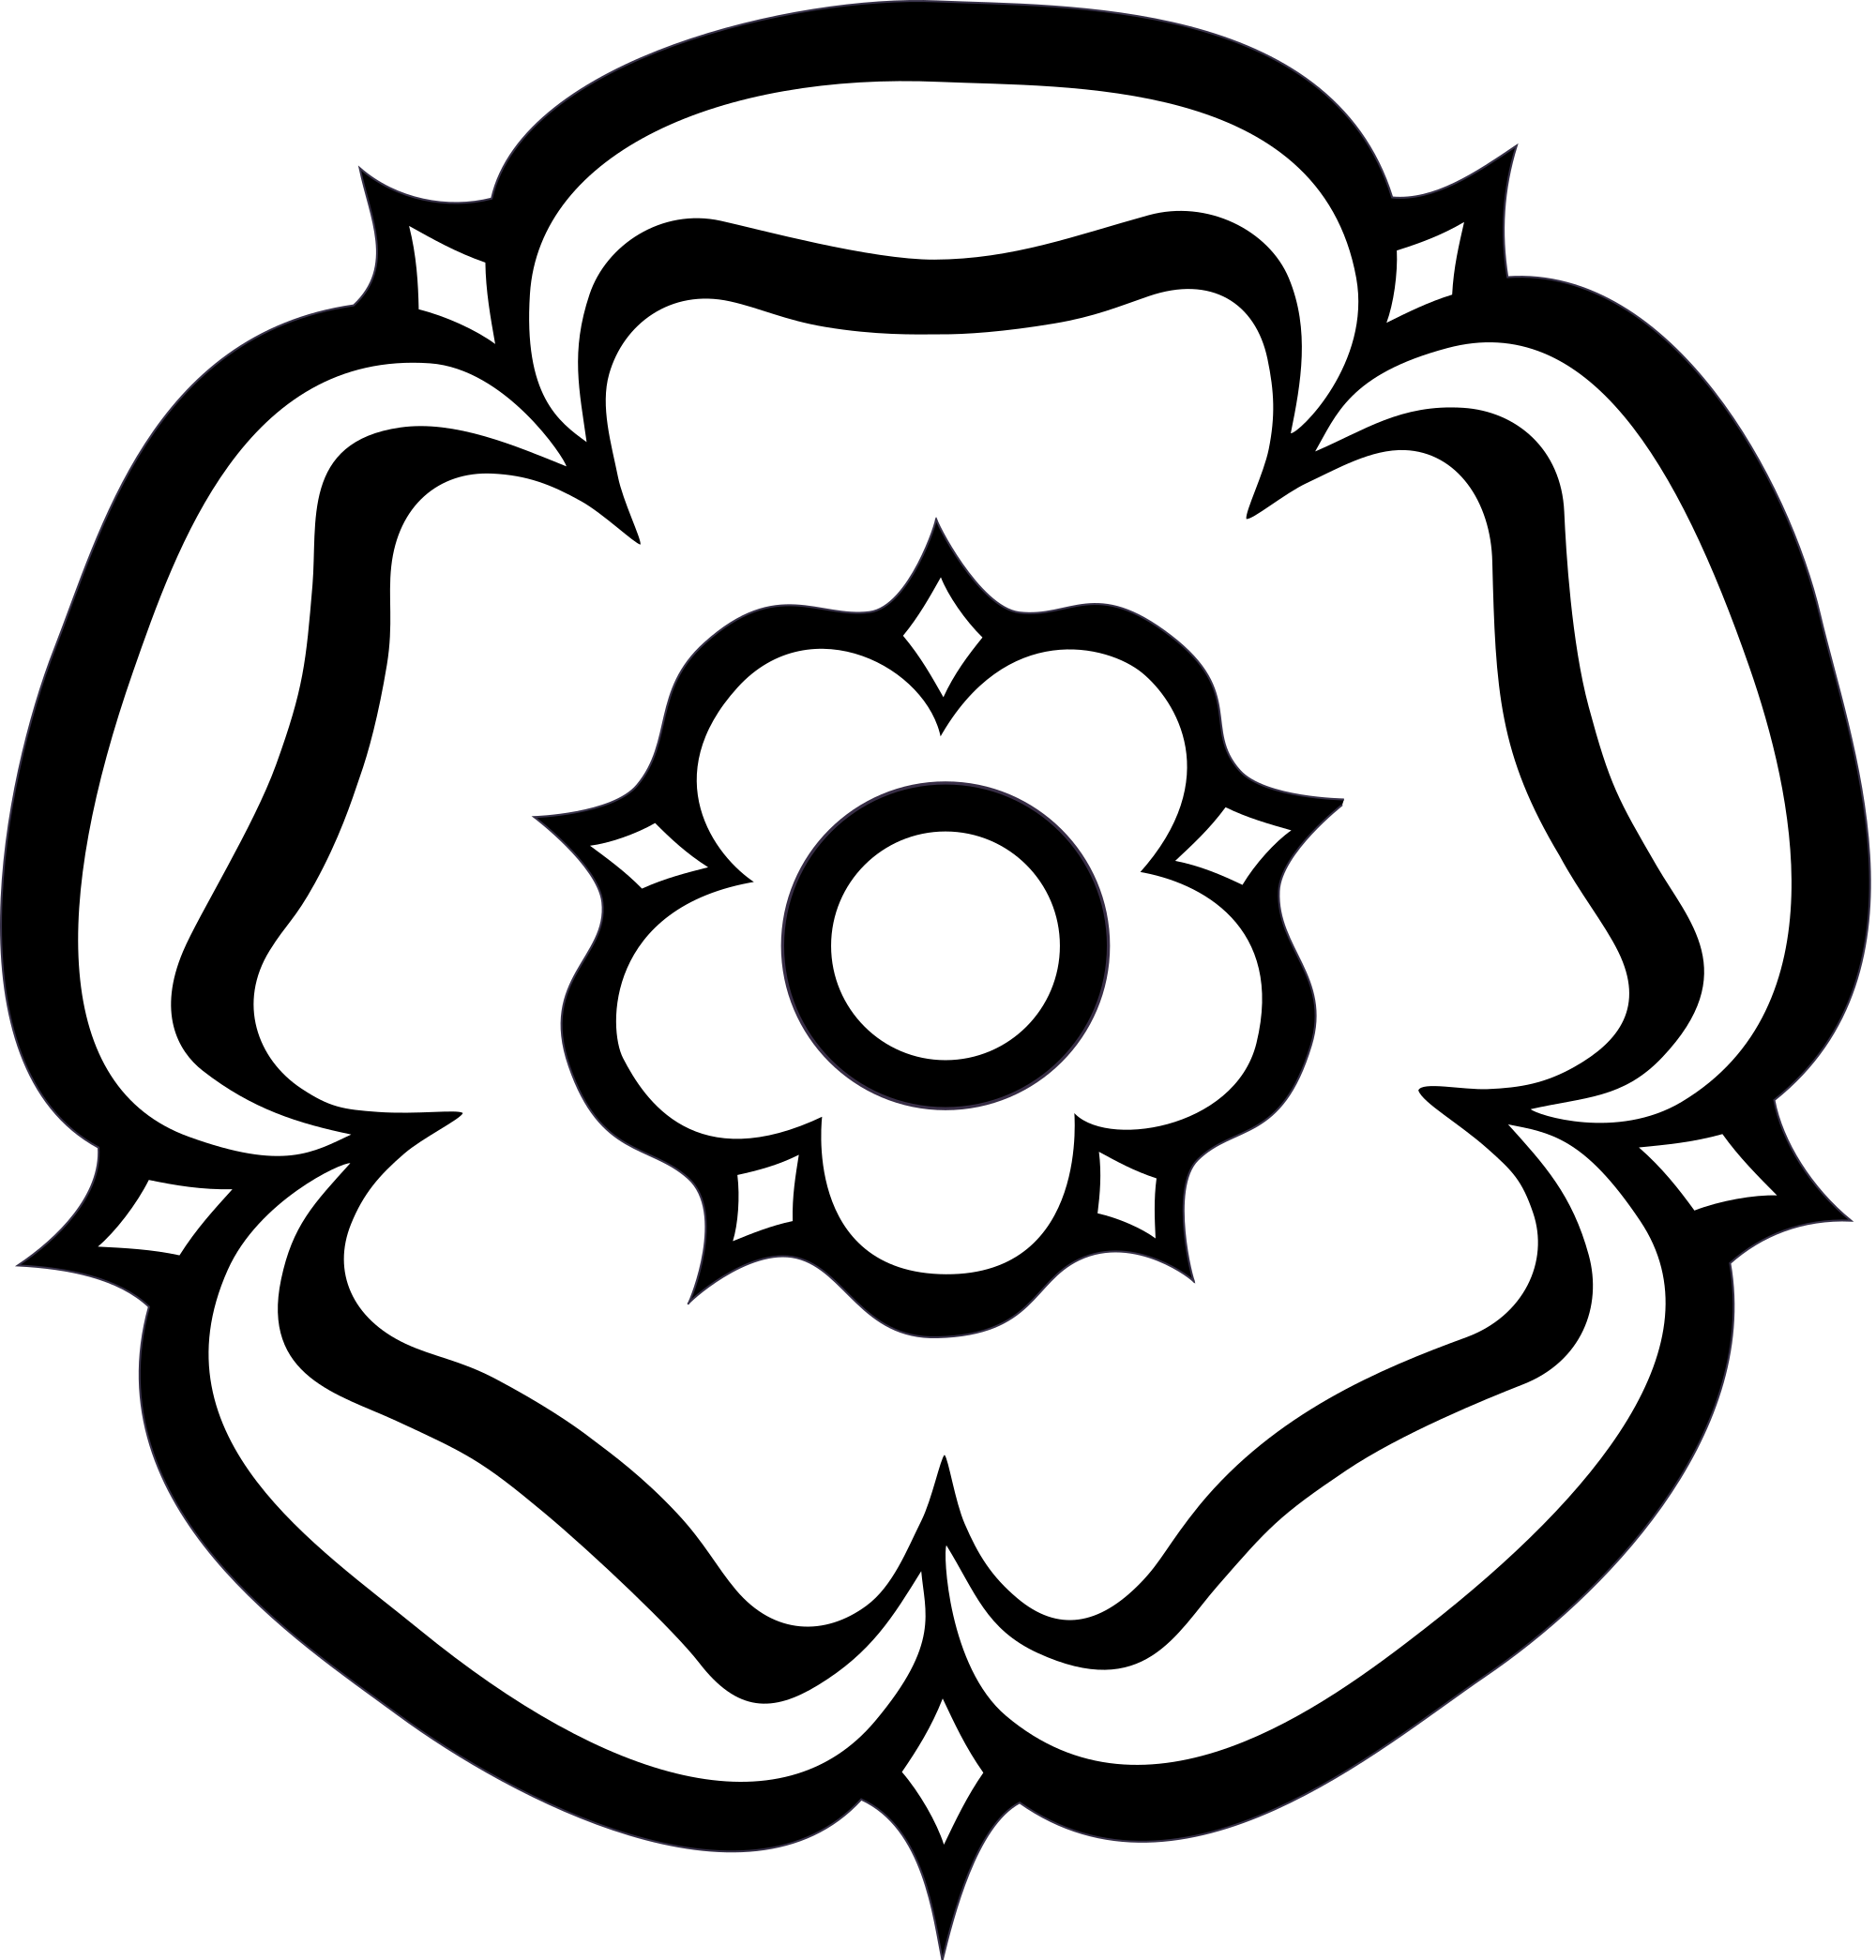 Clipart rose easy. Simple drawing at getdrawings